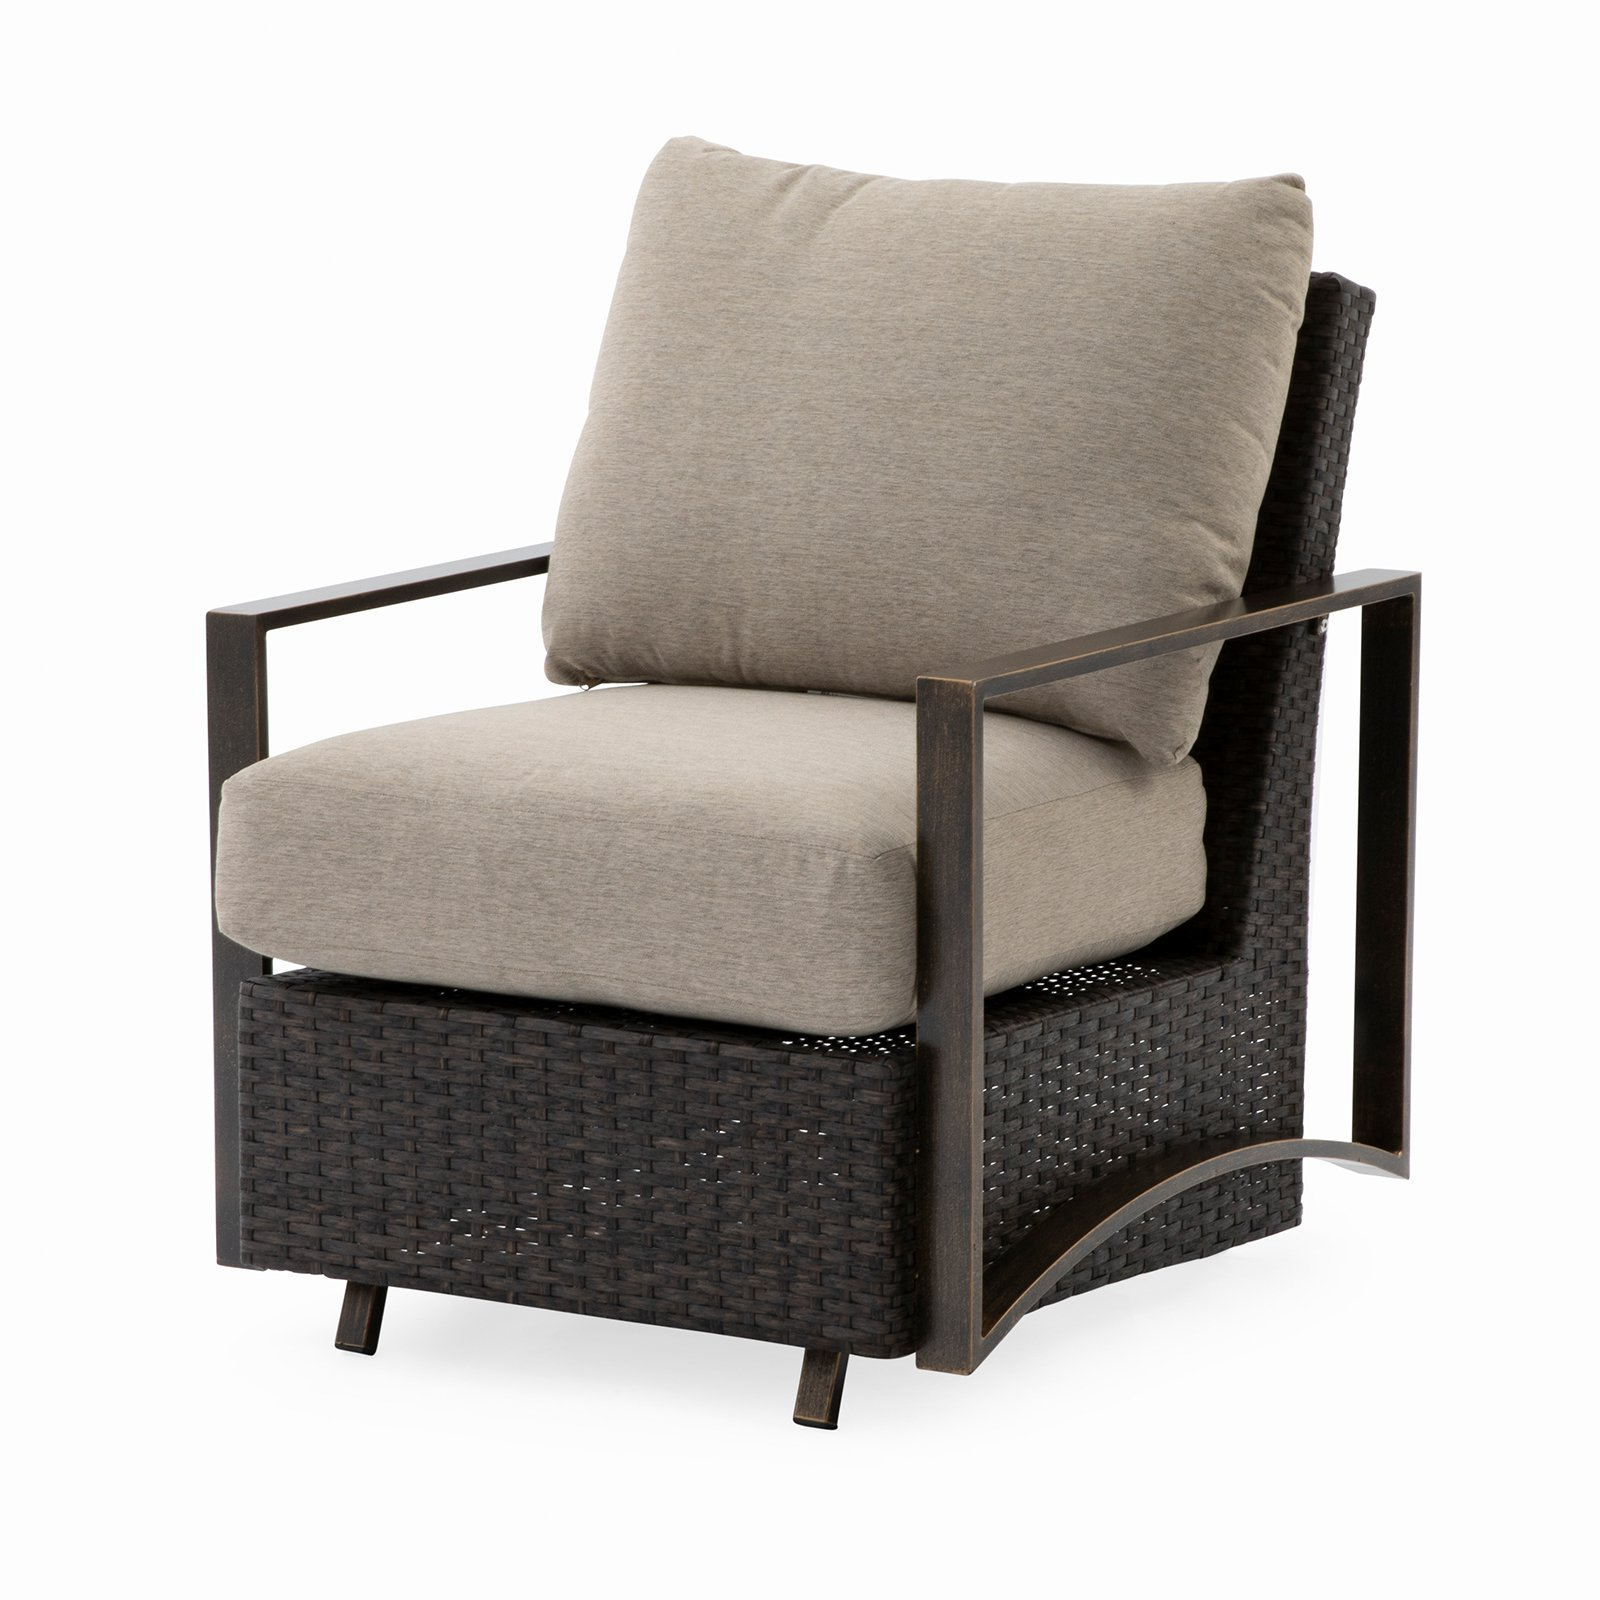 Trendy Outdoor Belham Living Santos Metal Deep Seating Glider Chair Within Padded Sling Double Gliders (Gallery 25 of 30)